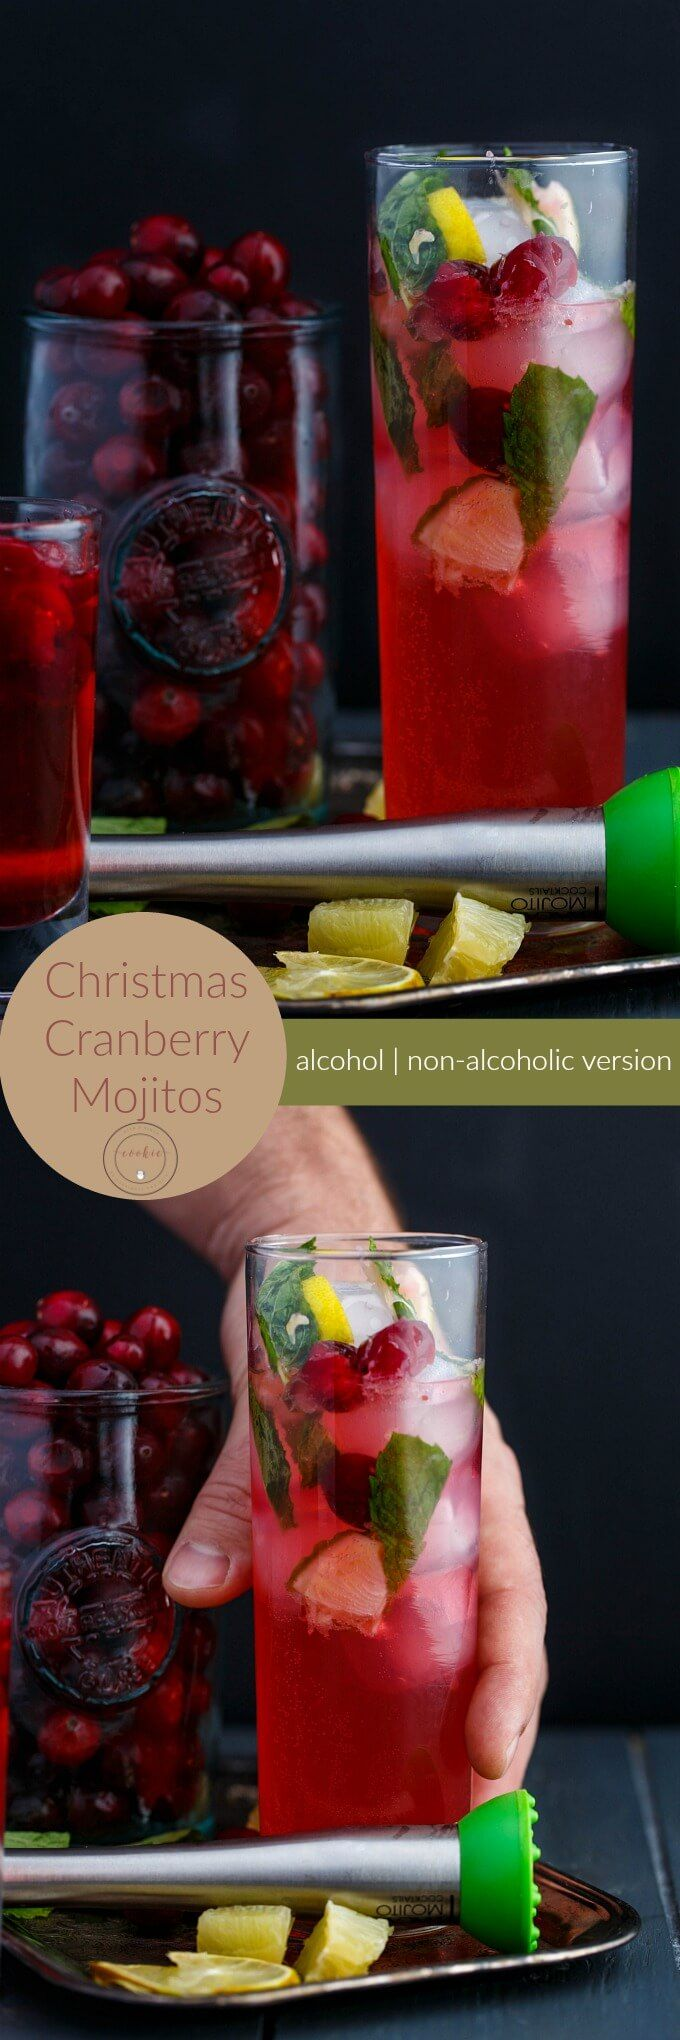 Christmas Cranberry Mojitos |  http://thecookiewriter.com | @thecookiewriter | #drinks | A wonderful holiday beverage that can be made with or without alcohol! These mojitos are also perfect for New Years!